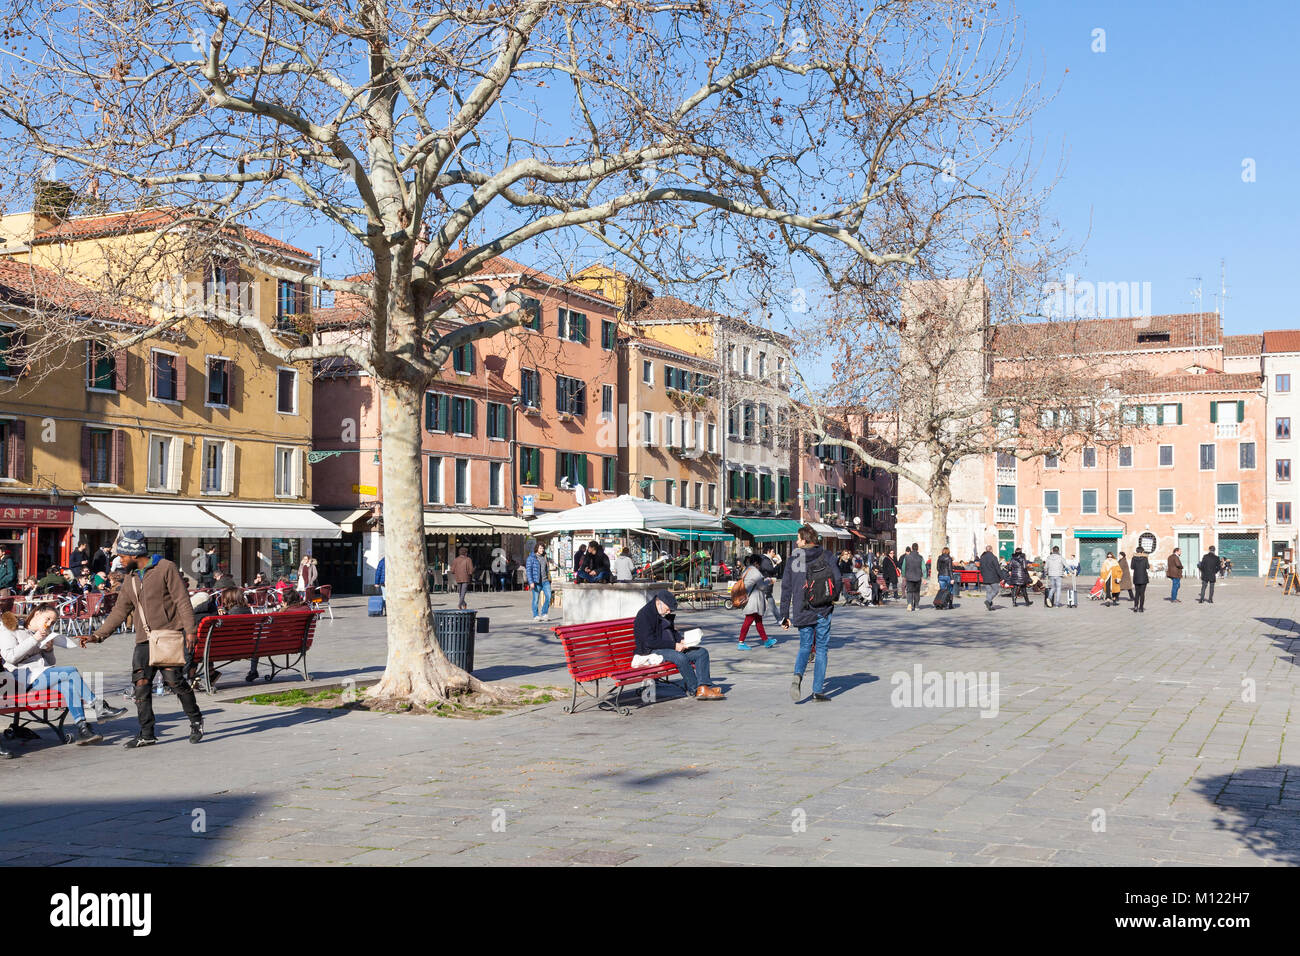 Page 2 Campo Santa Margherita High Resolution Stock Photography And Images Alamy